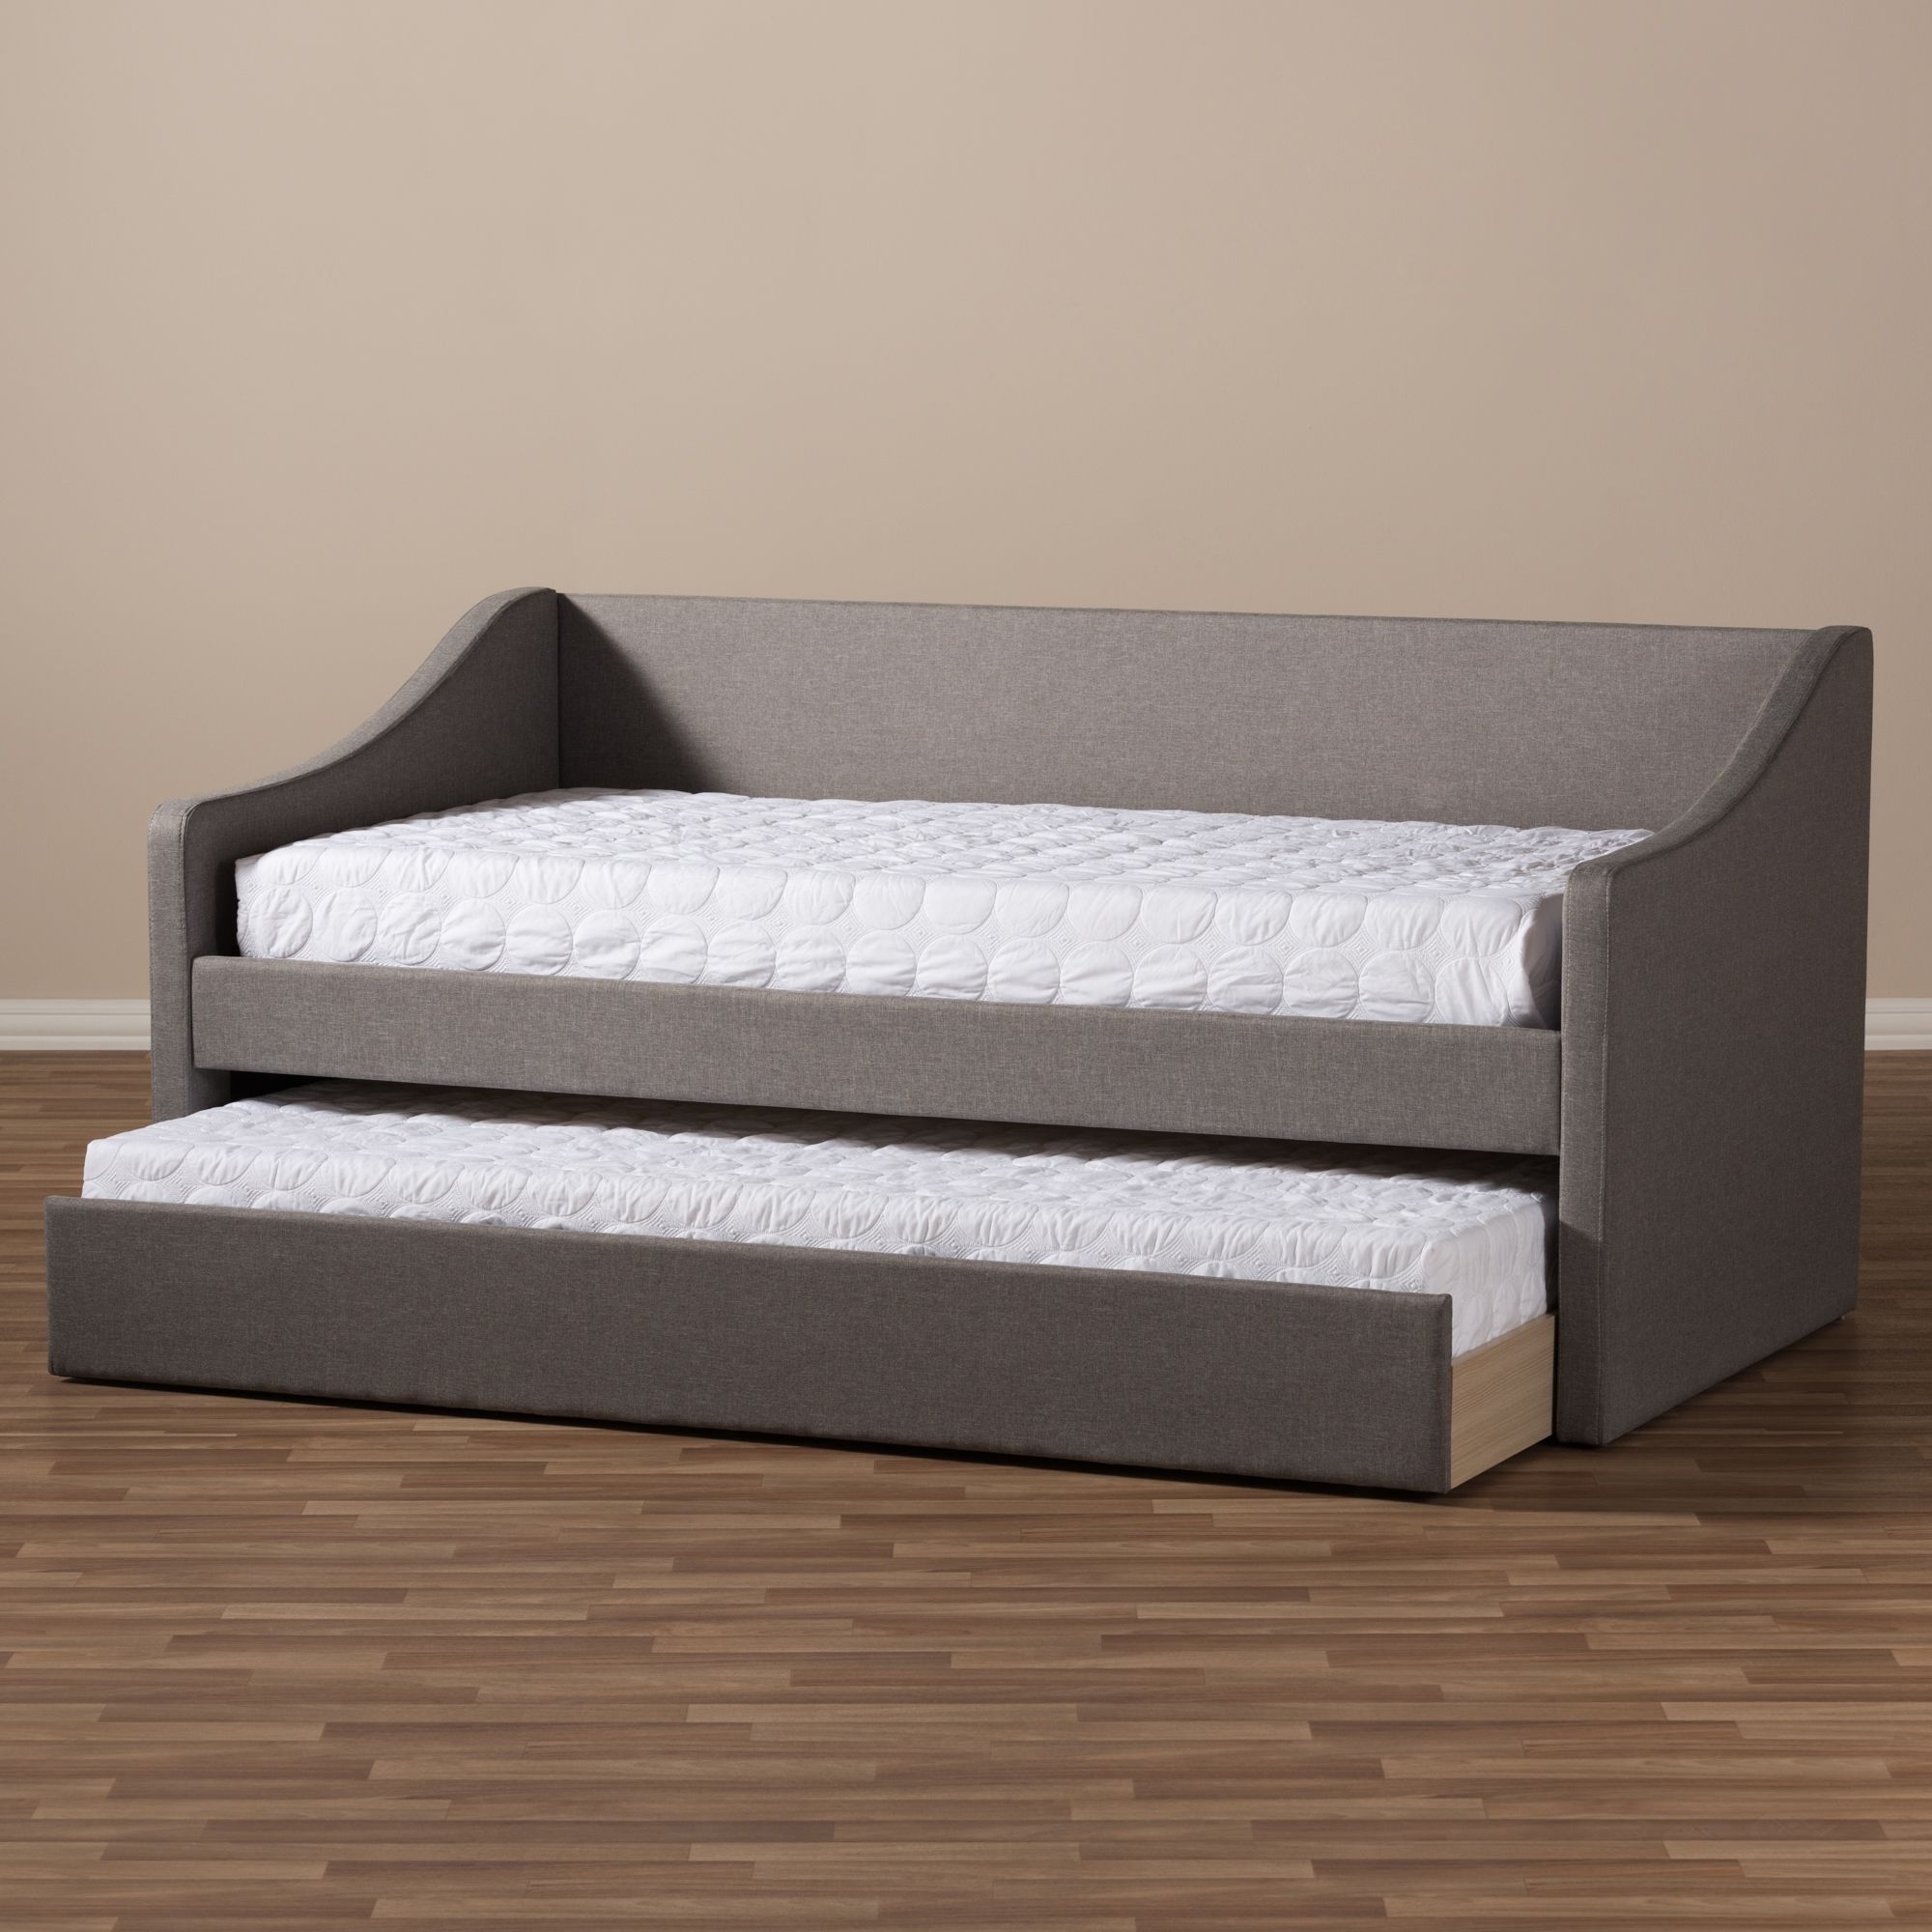 Best Sofa Bed With Trundle 88 With Additional Sofa Design Ideas with Sofa Bed With Trundle